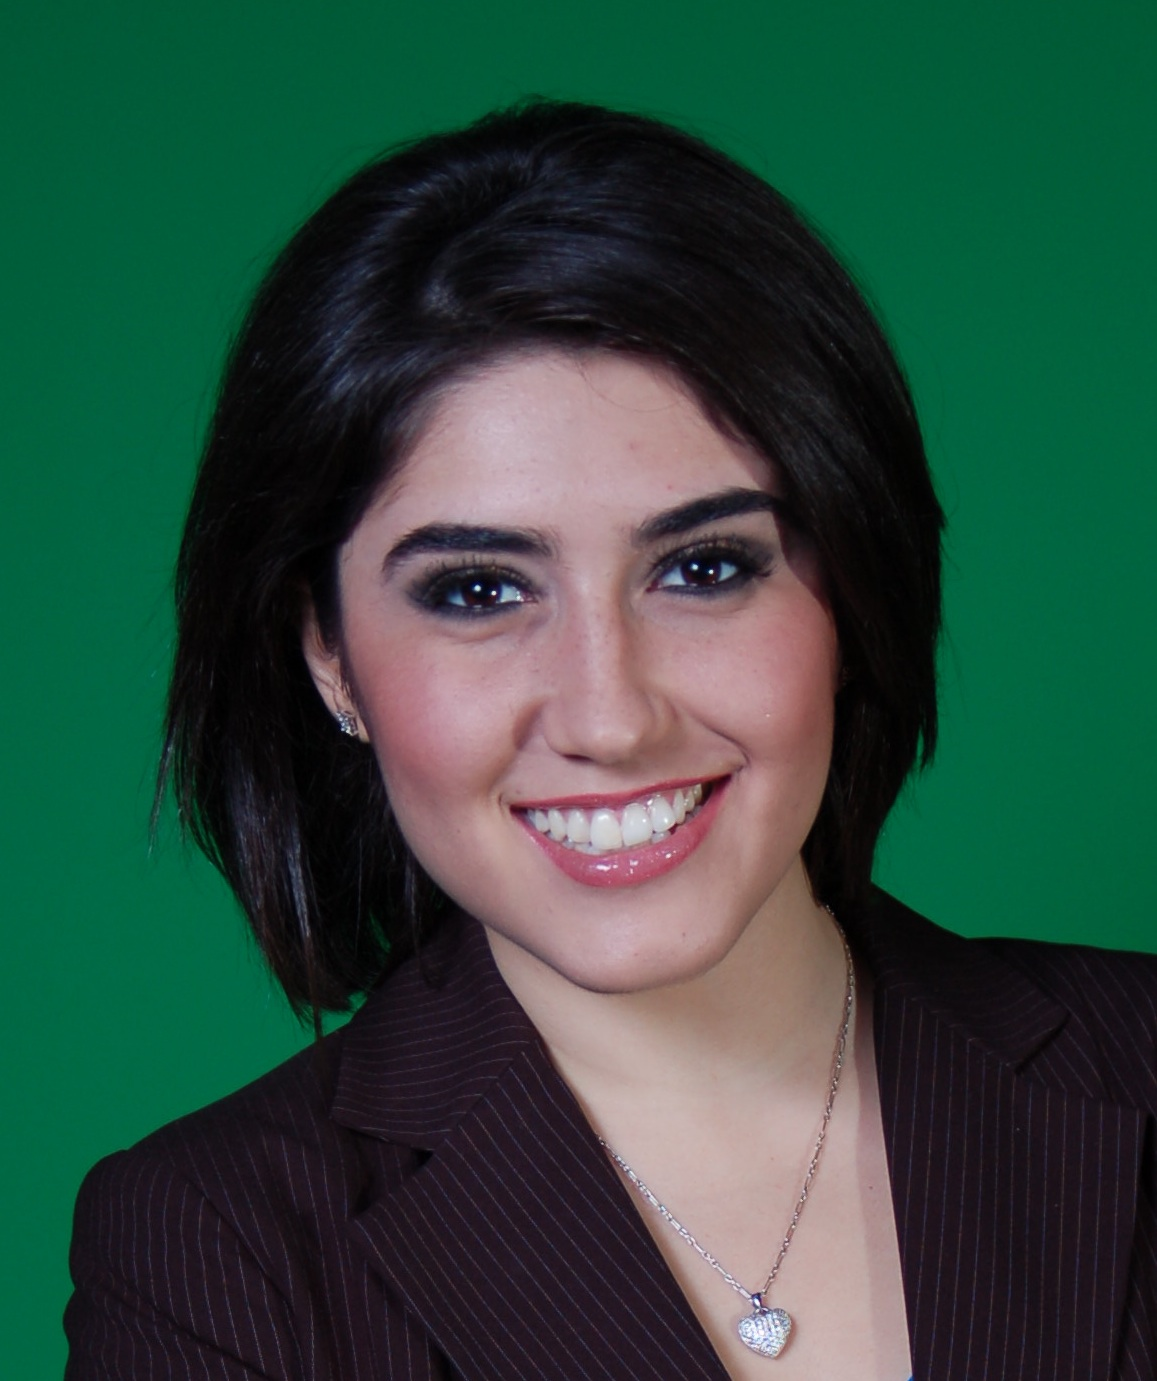 Erika Gonzalez is leaving her co-anchor job at Fox 2 News in McAllen, to become a reporter for KEYE-42 in Austin. She will also be reporting for the ... - Erika_Gonzalez